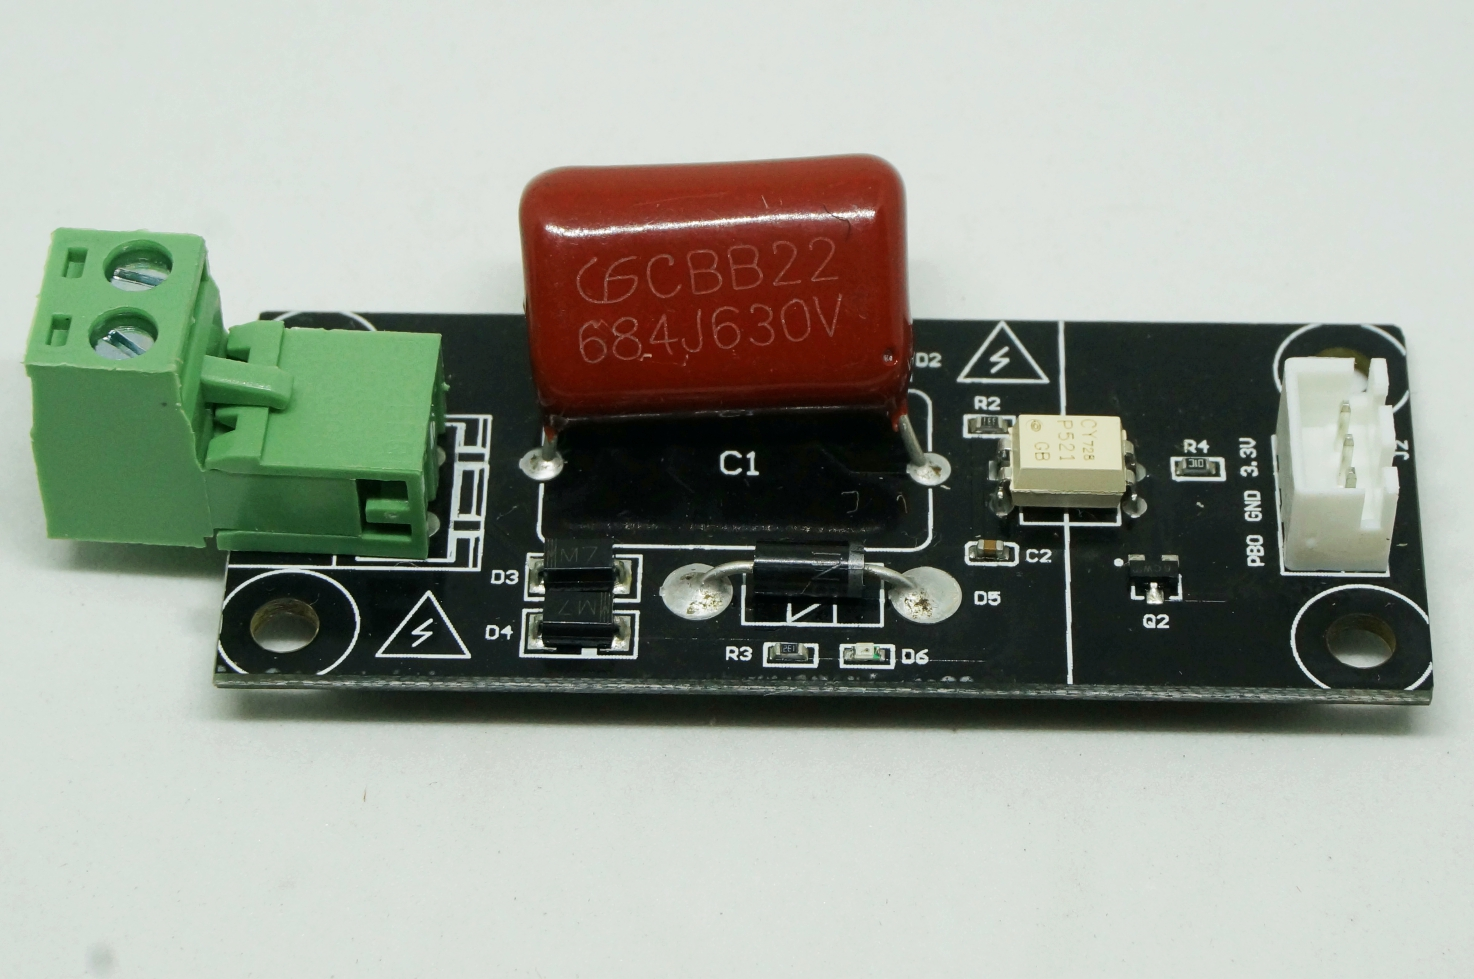 Power outage detecting module